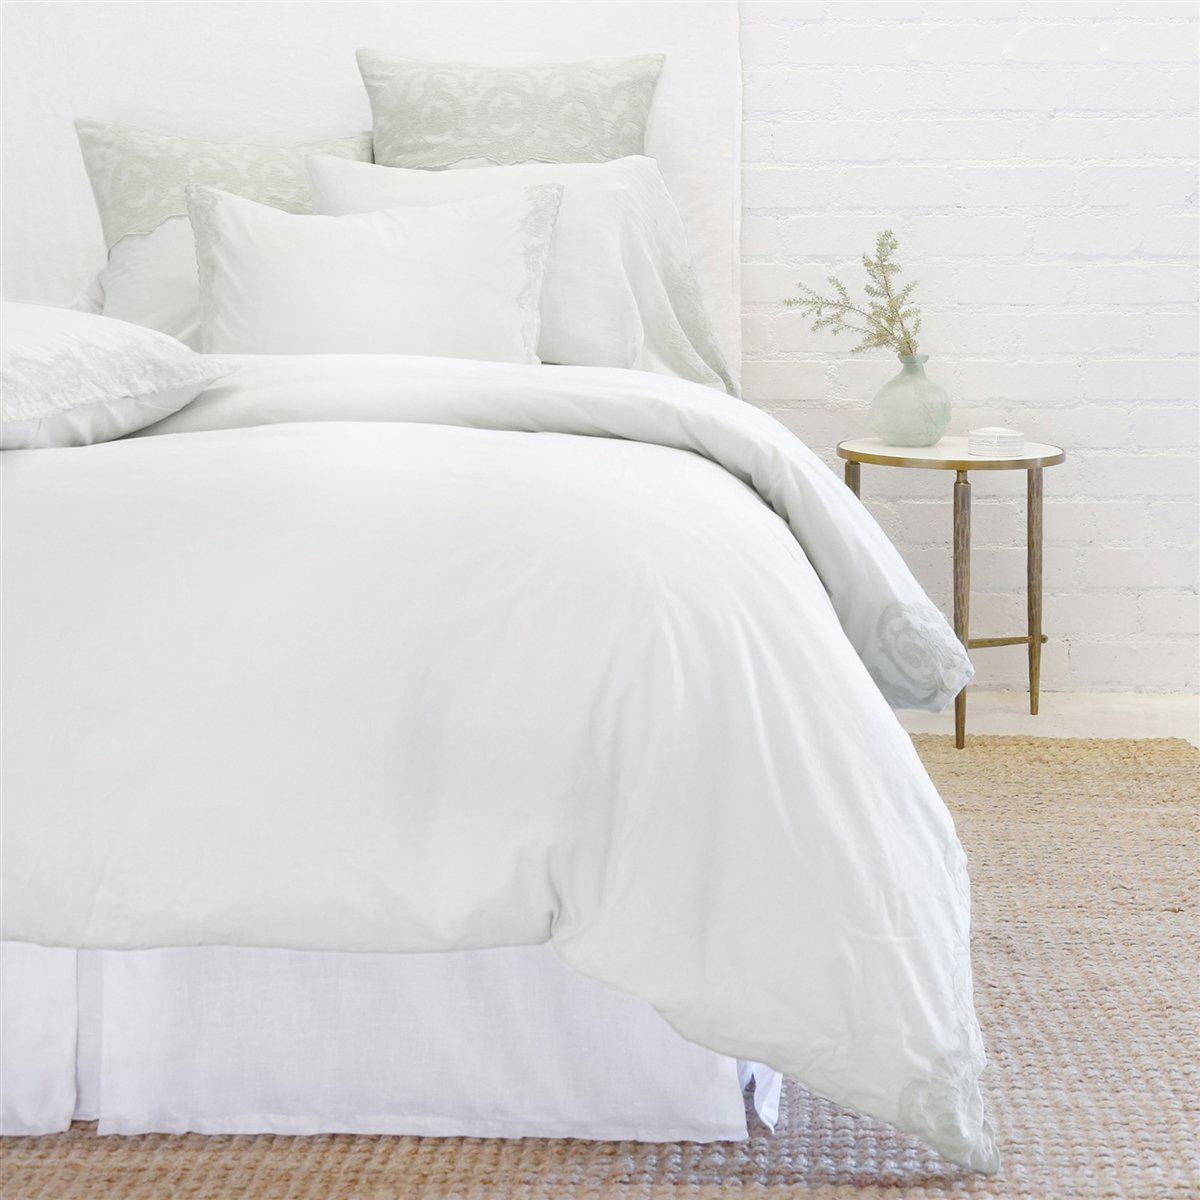 Grace Duvet Set by Pom Pom at Home-Bed & Bath-Pom Pom-Twin-Powder Blue-A Cottage in the City